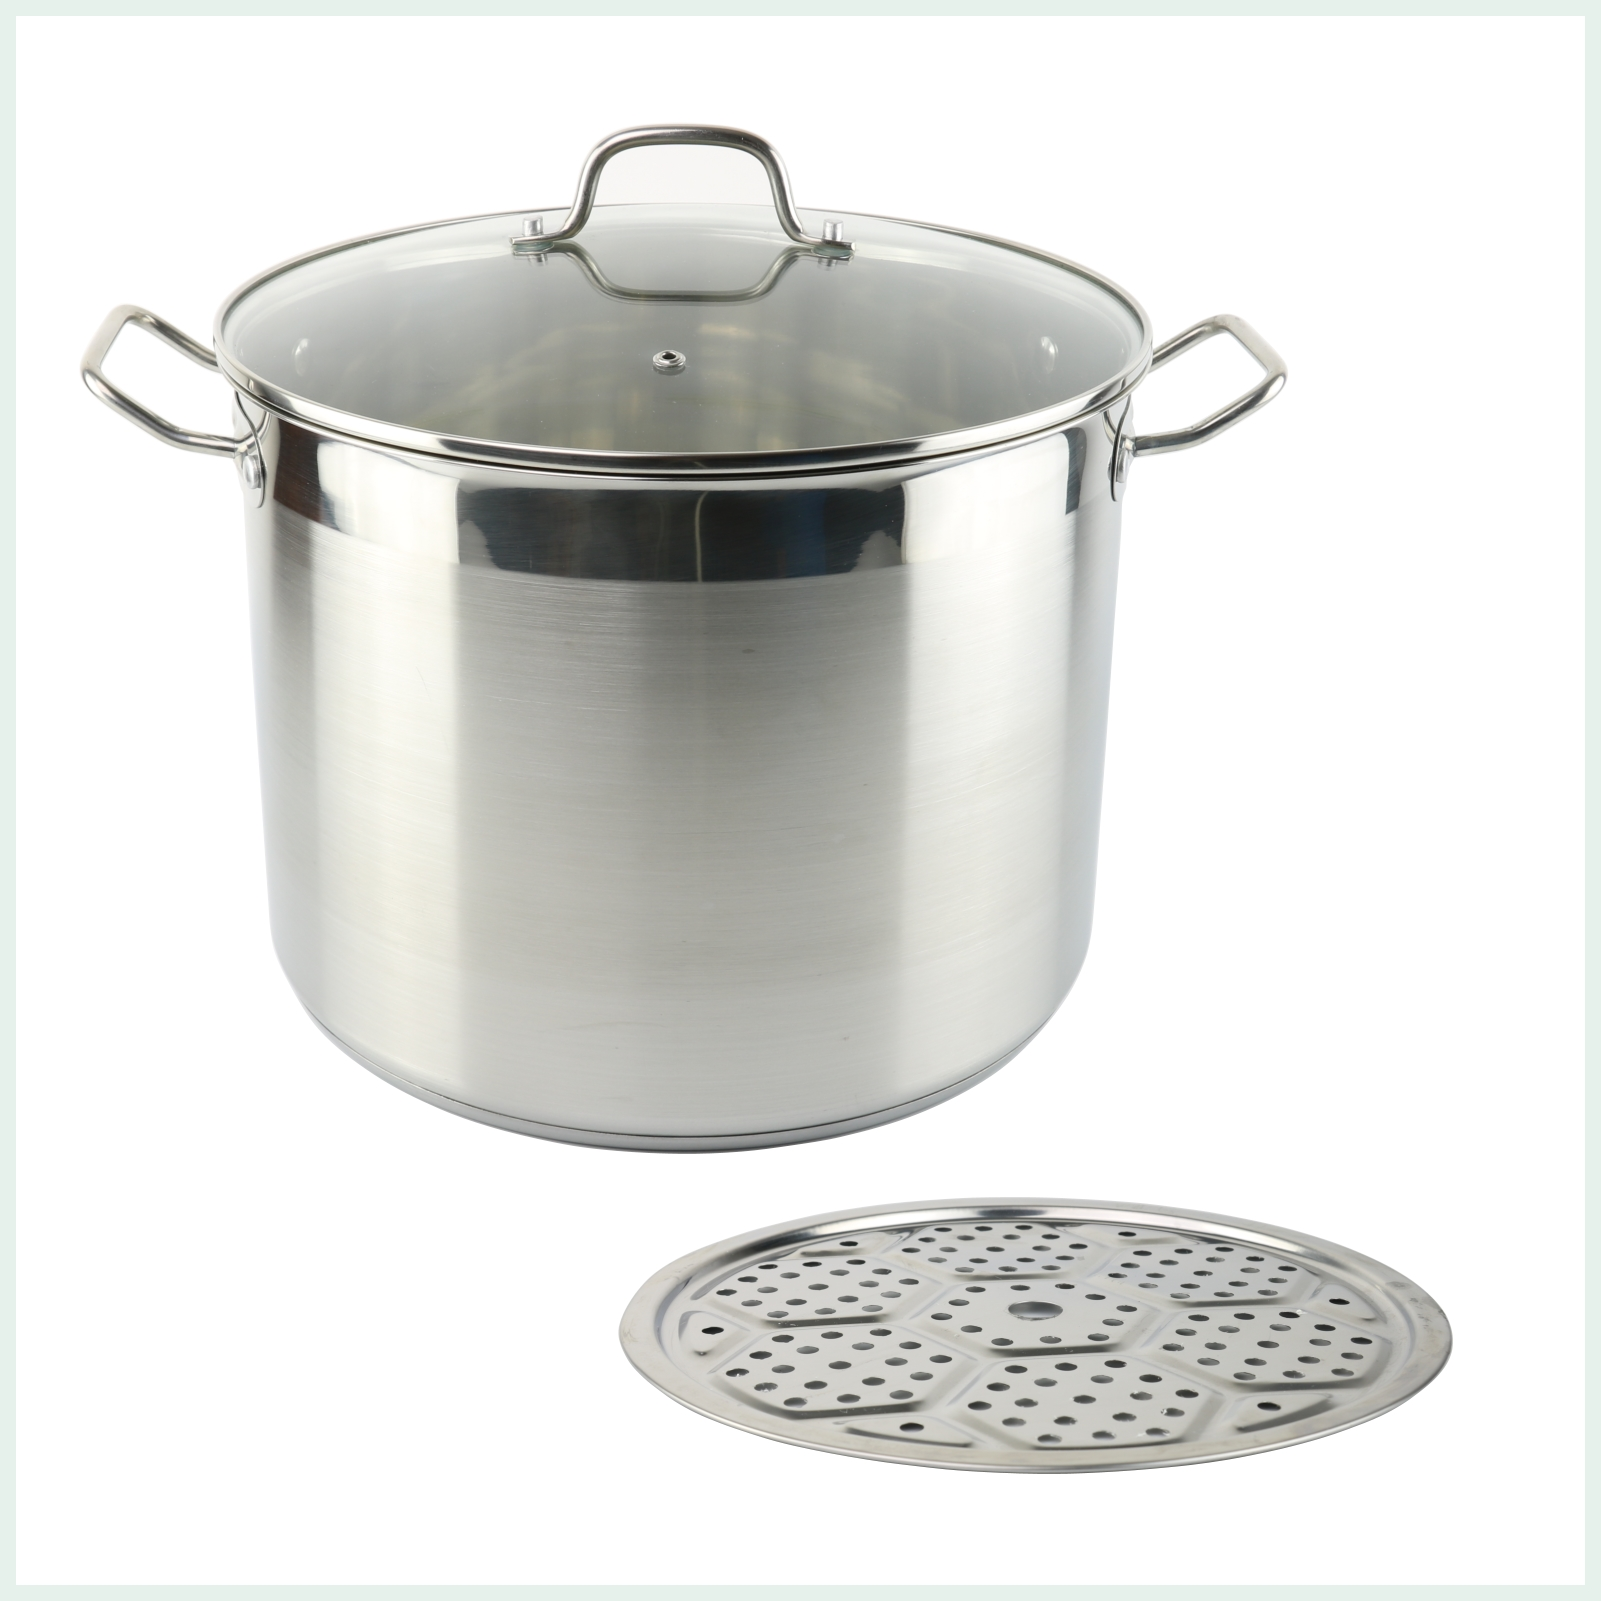 stainless-steel-cannning-pan-canner-with-rack-trivet